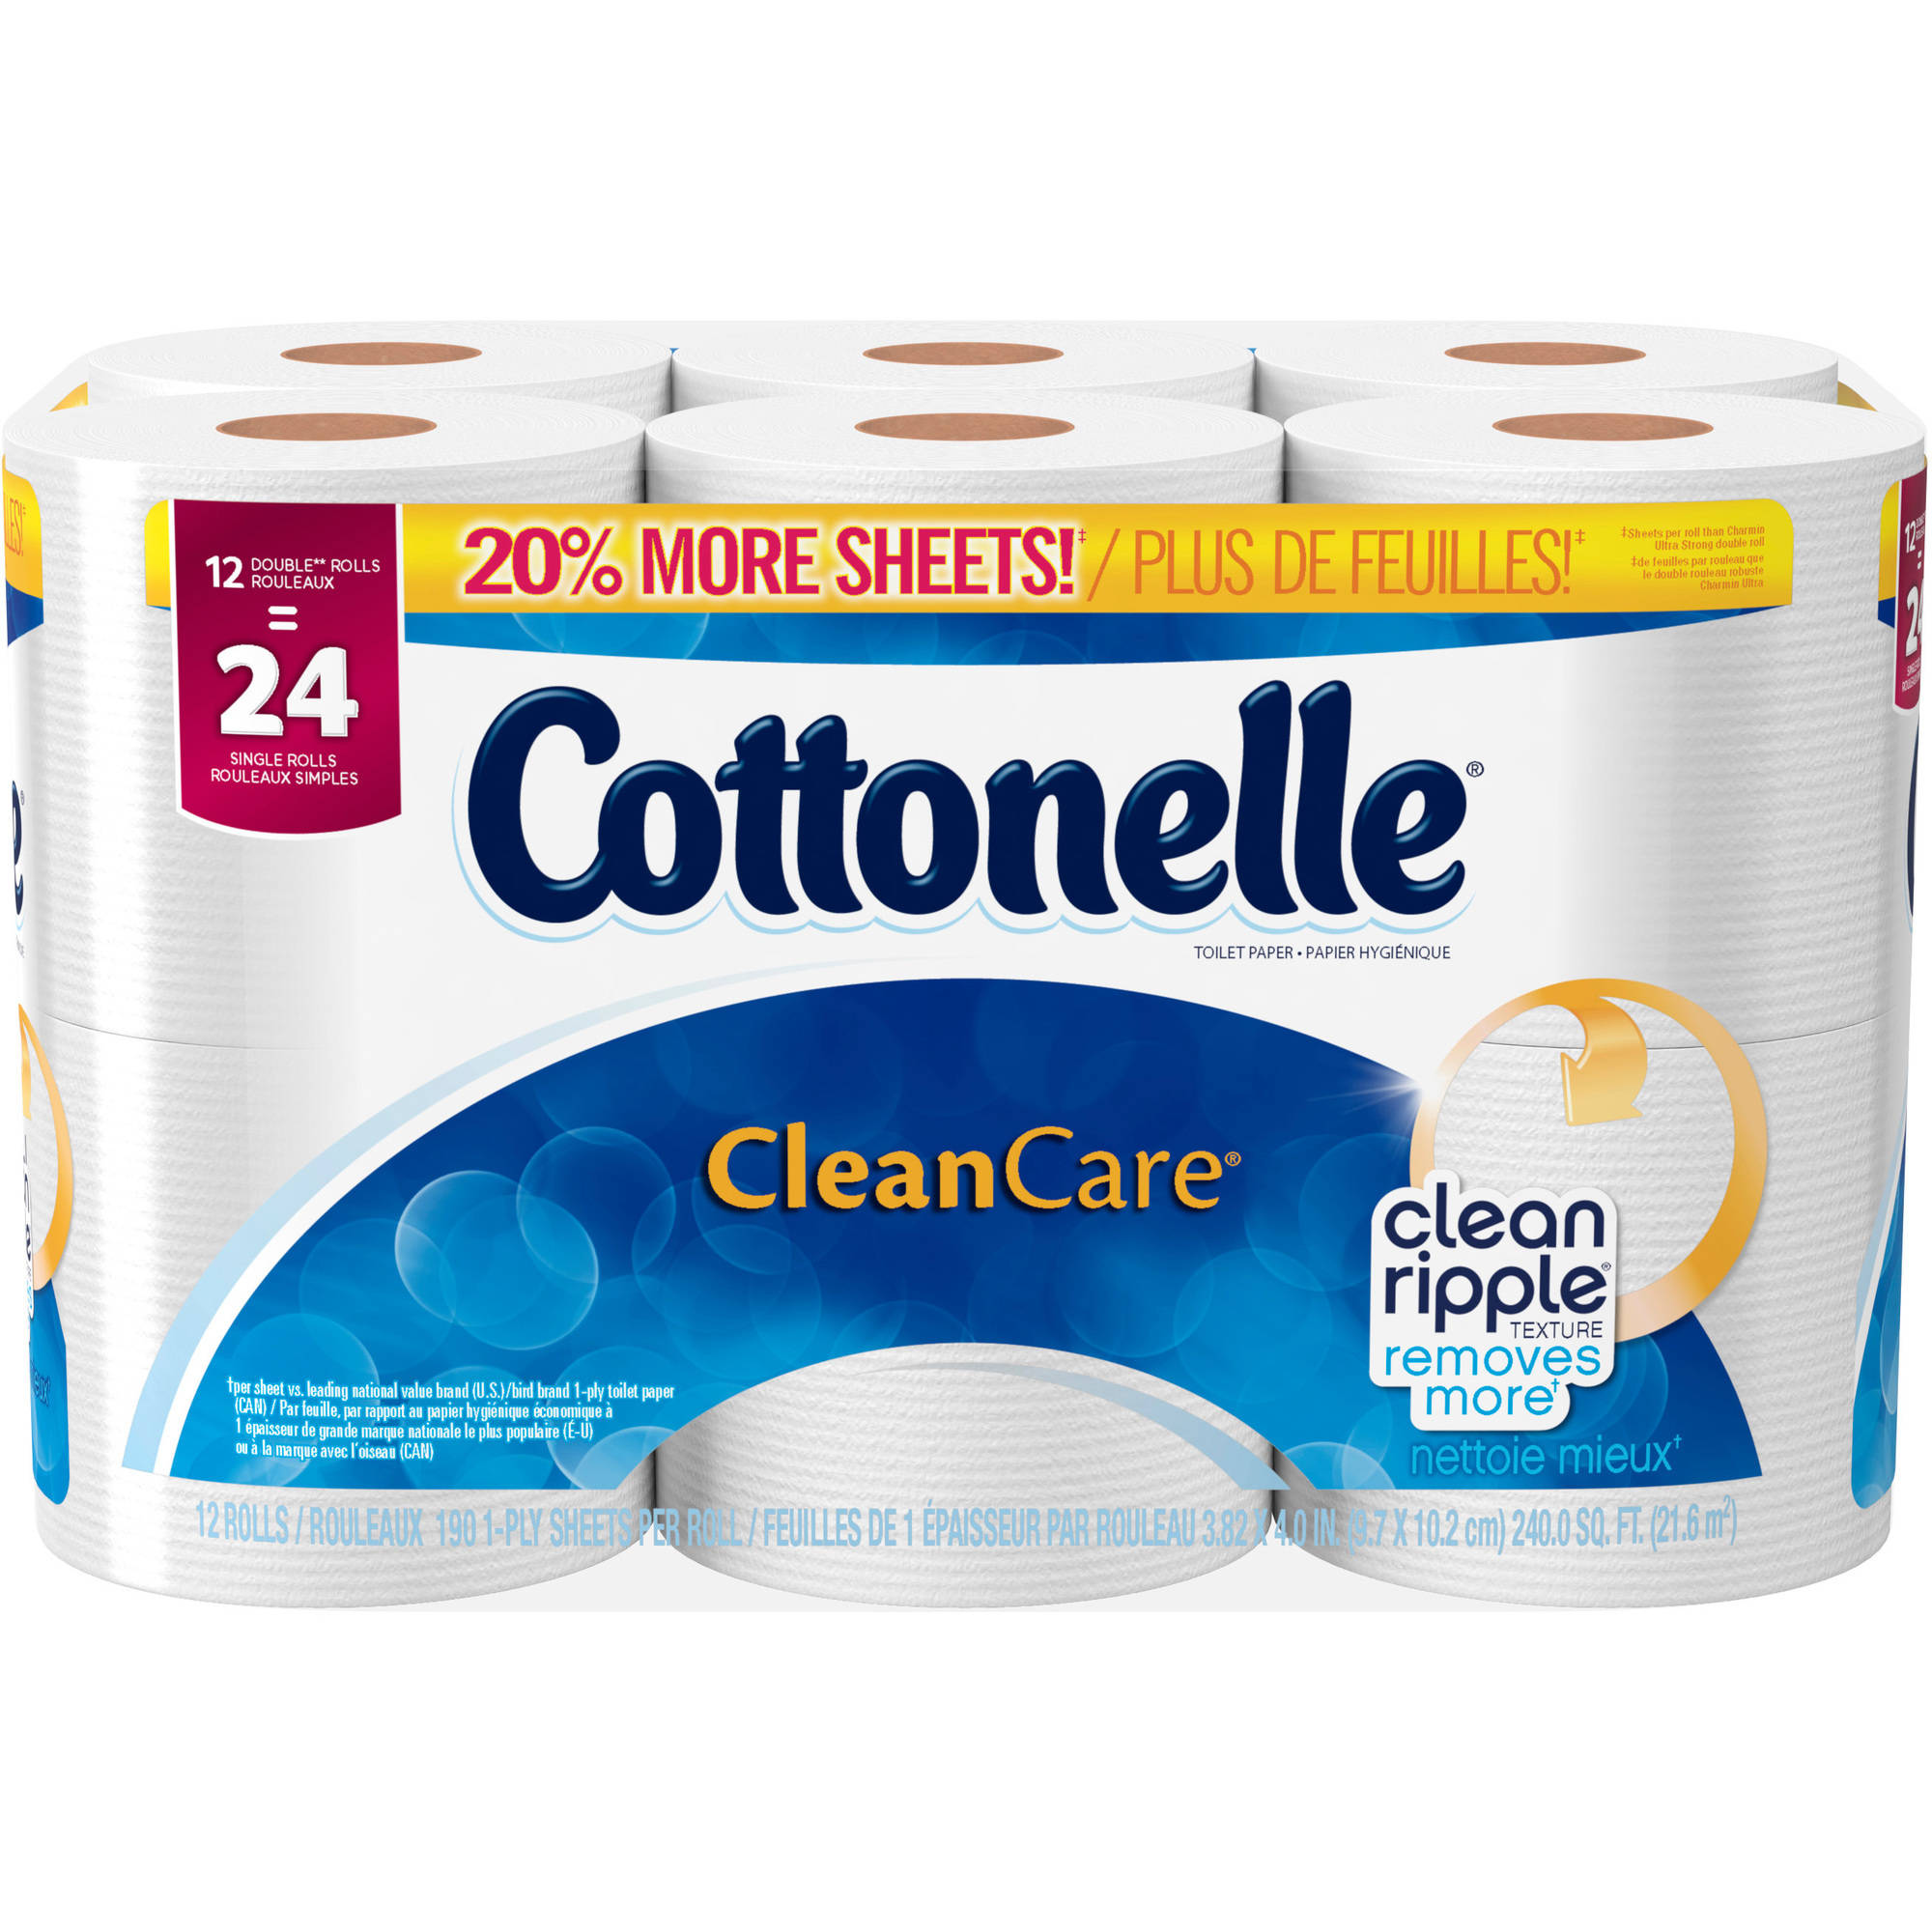 Cottonelle Clean Care Double Roll Toilet Paper, 190 sheets, 12 rolls